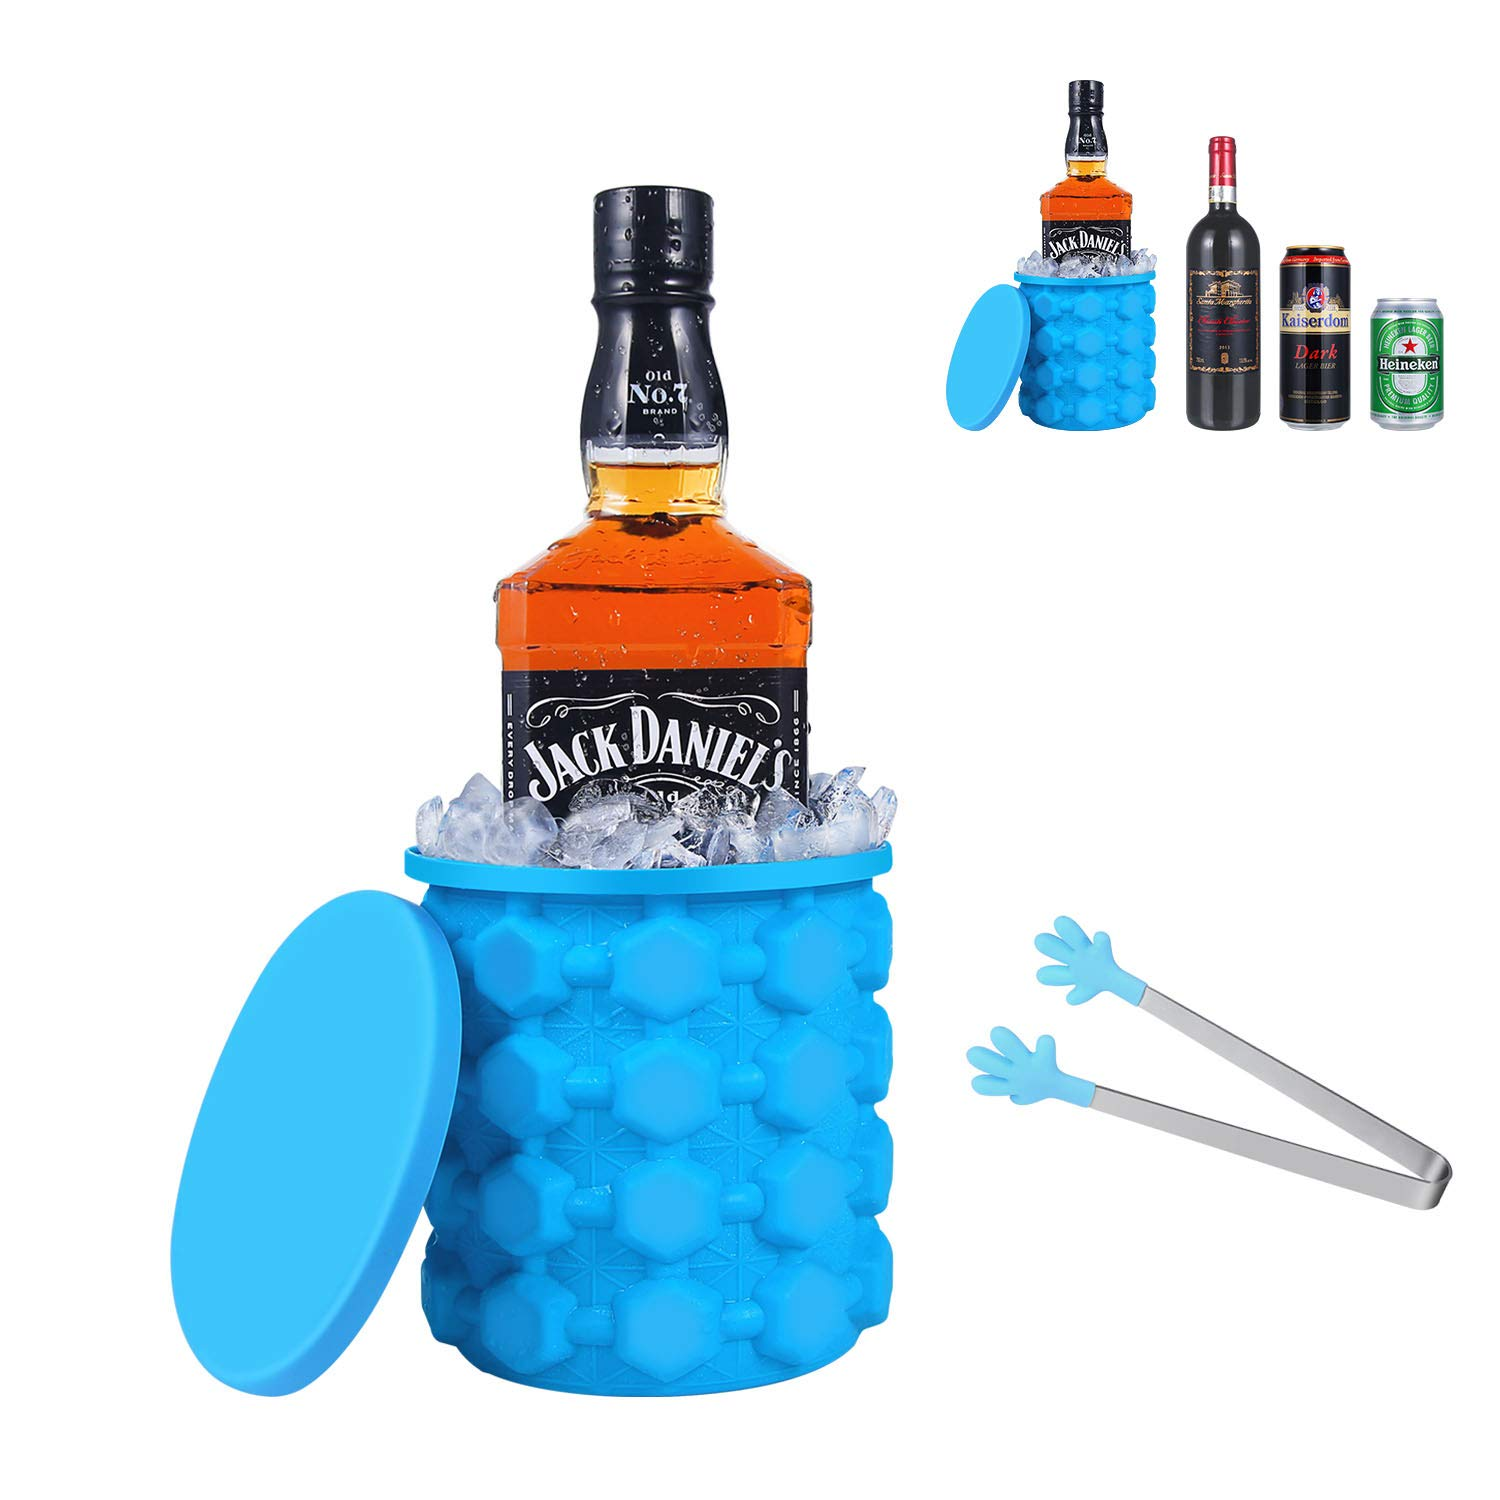 Silicone Ice Bucket,SS SHOVAN 2019 Upgraded Version Oversized Ice Maker with Tongs Beverage Cooler Perfect for Football Matches Cocktail Party Picnics Beach Outdoor(Large)